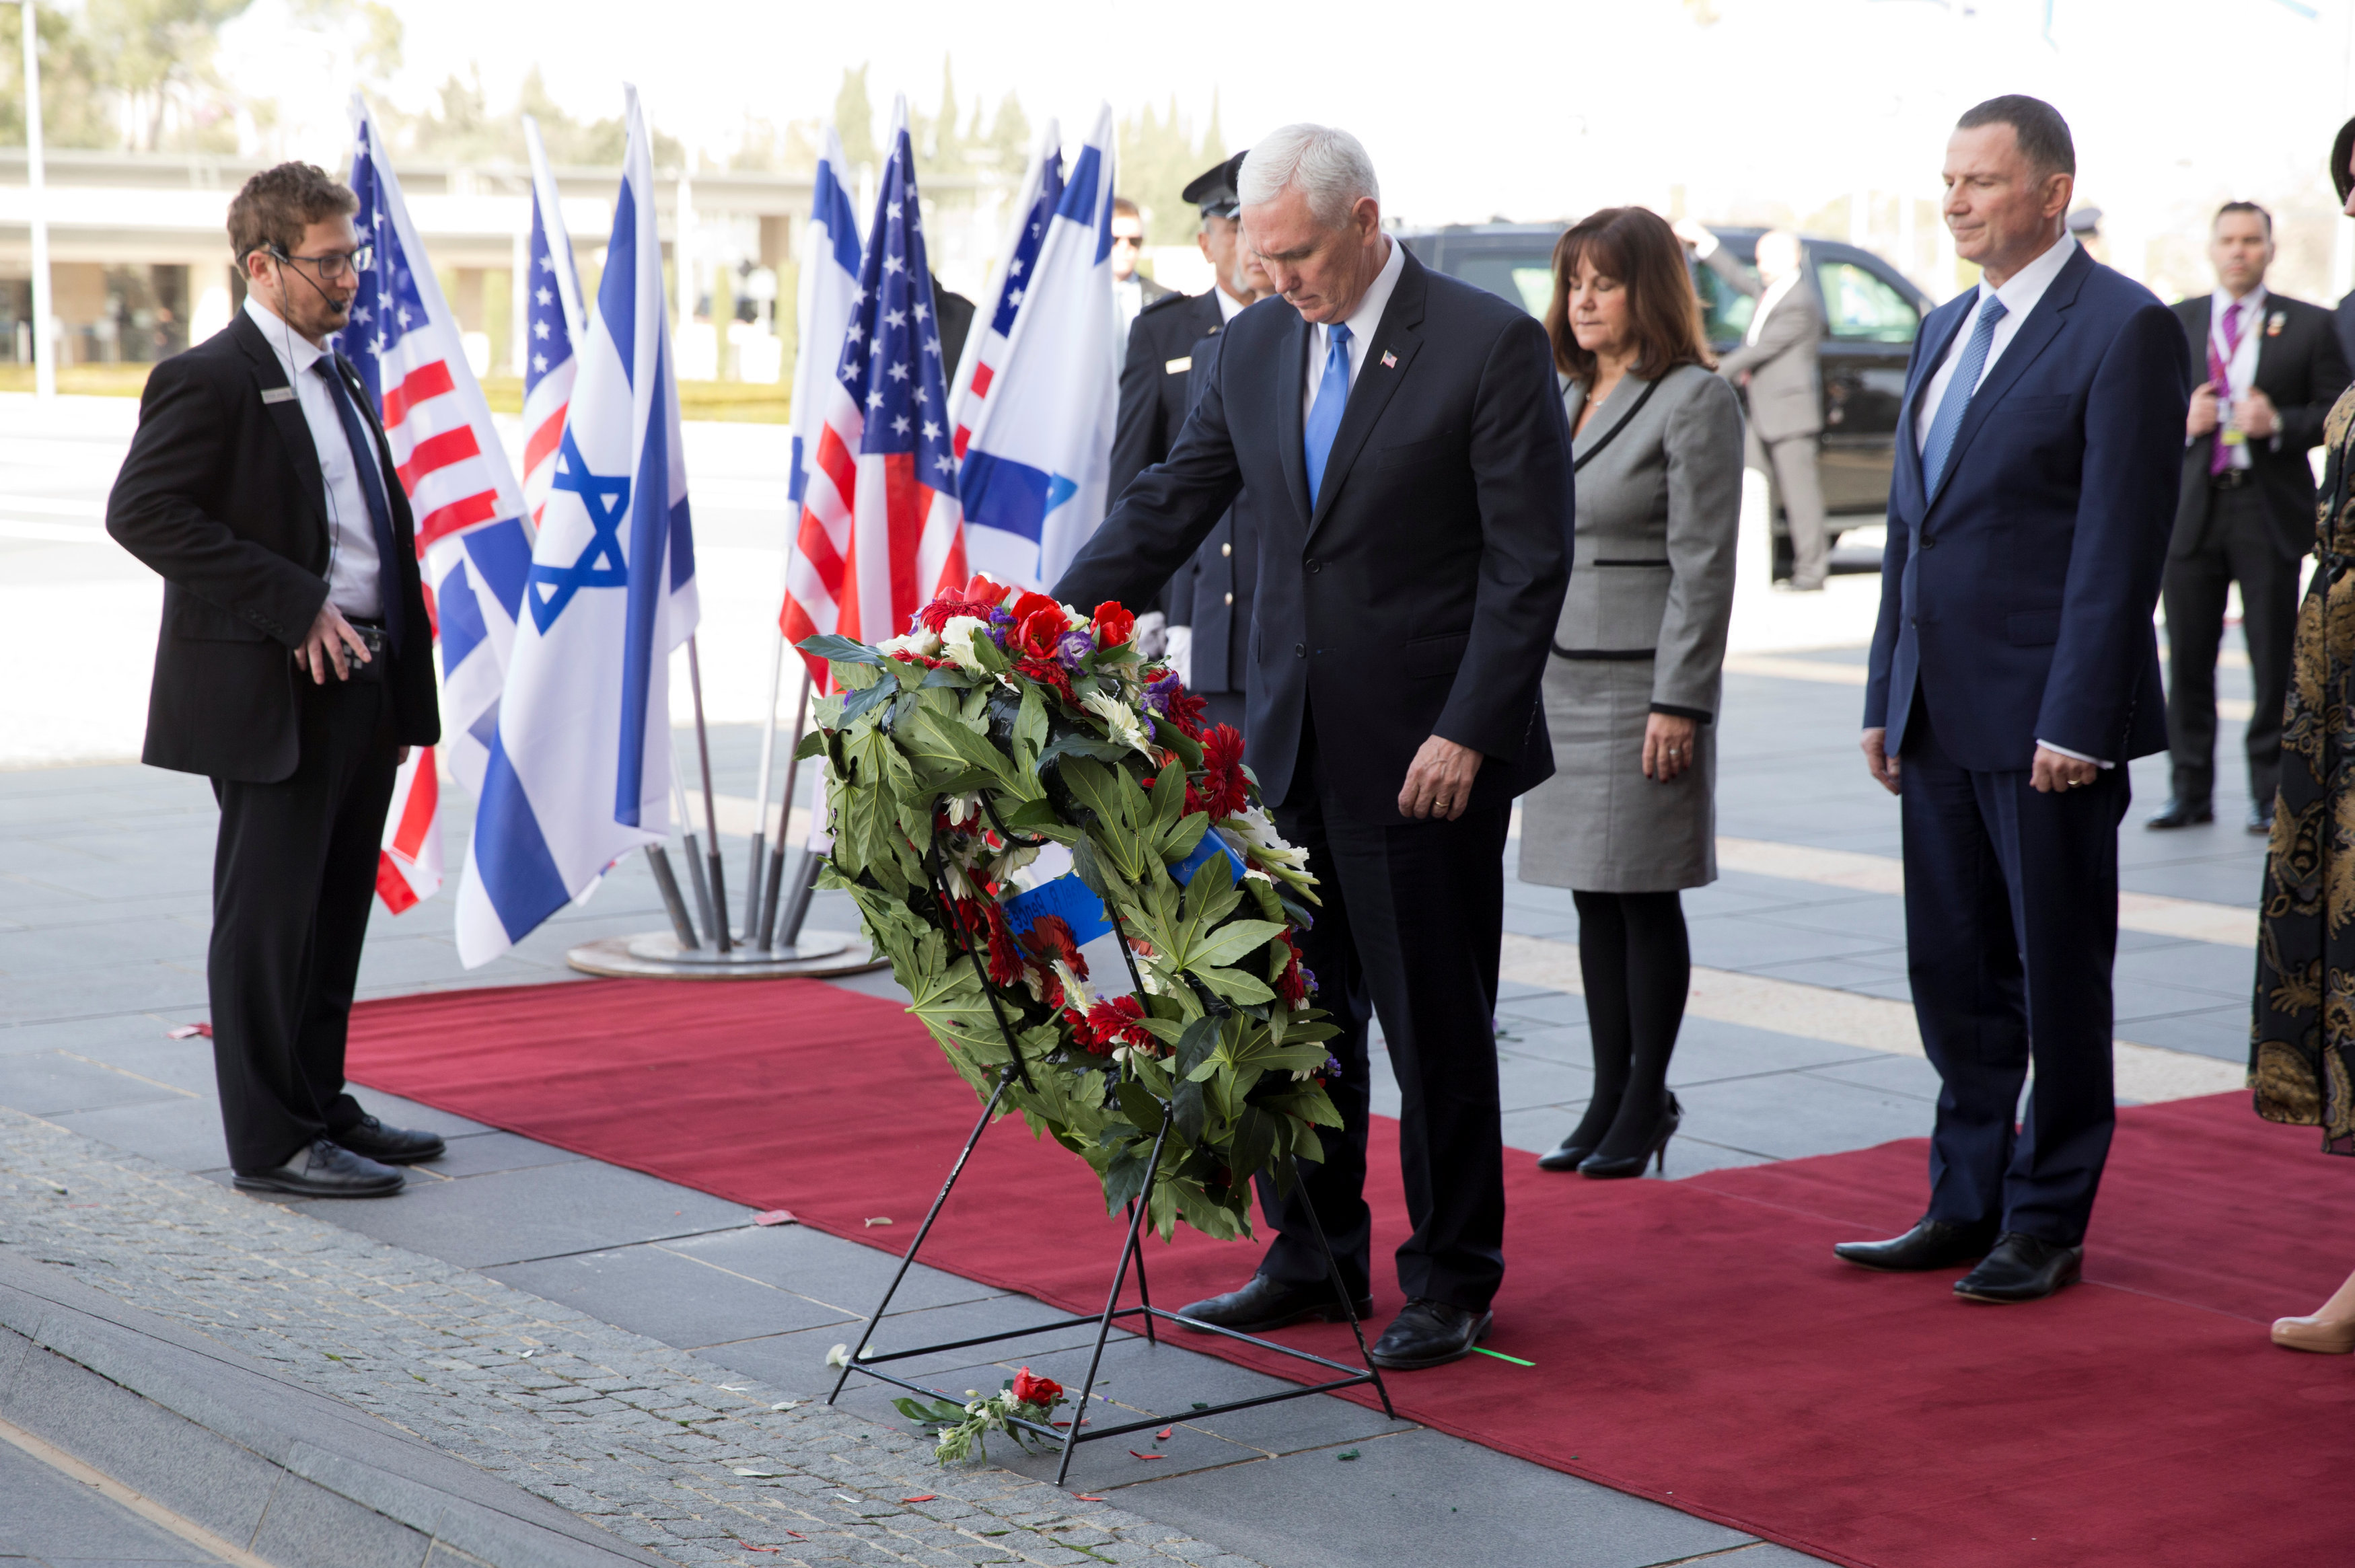 U.S. Vice President Mike Pence lays a wreath during a formal reception ceremony at the Knesset, Israeli Parliament, in Jerusalem January 22, 2018